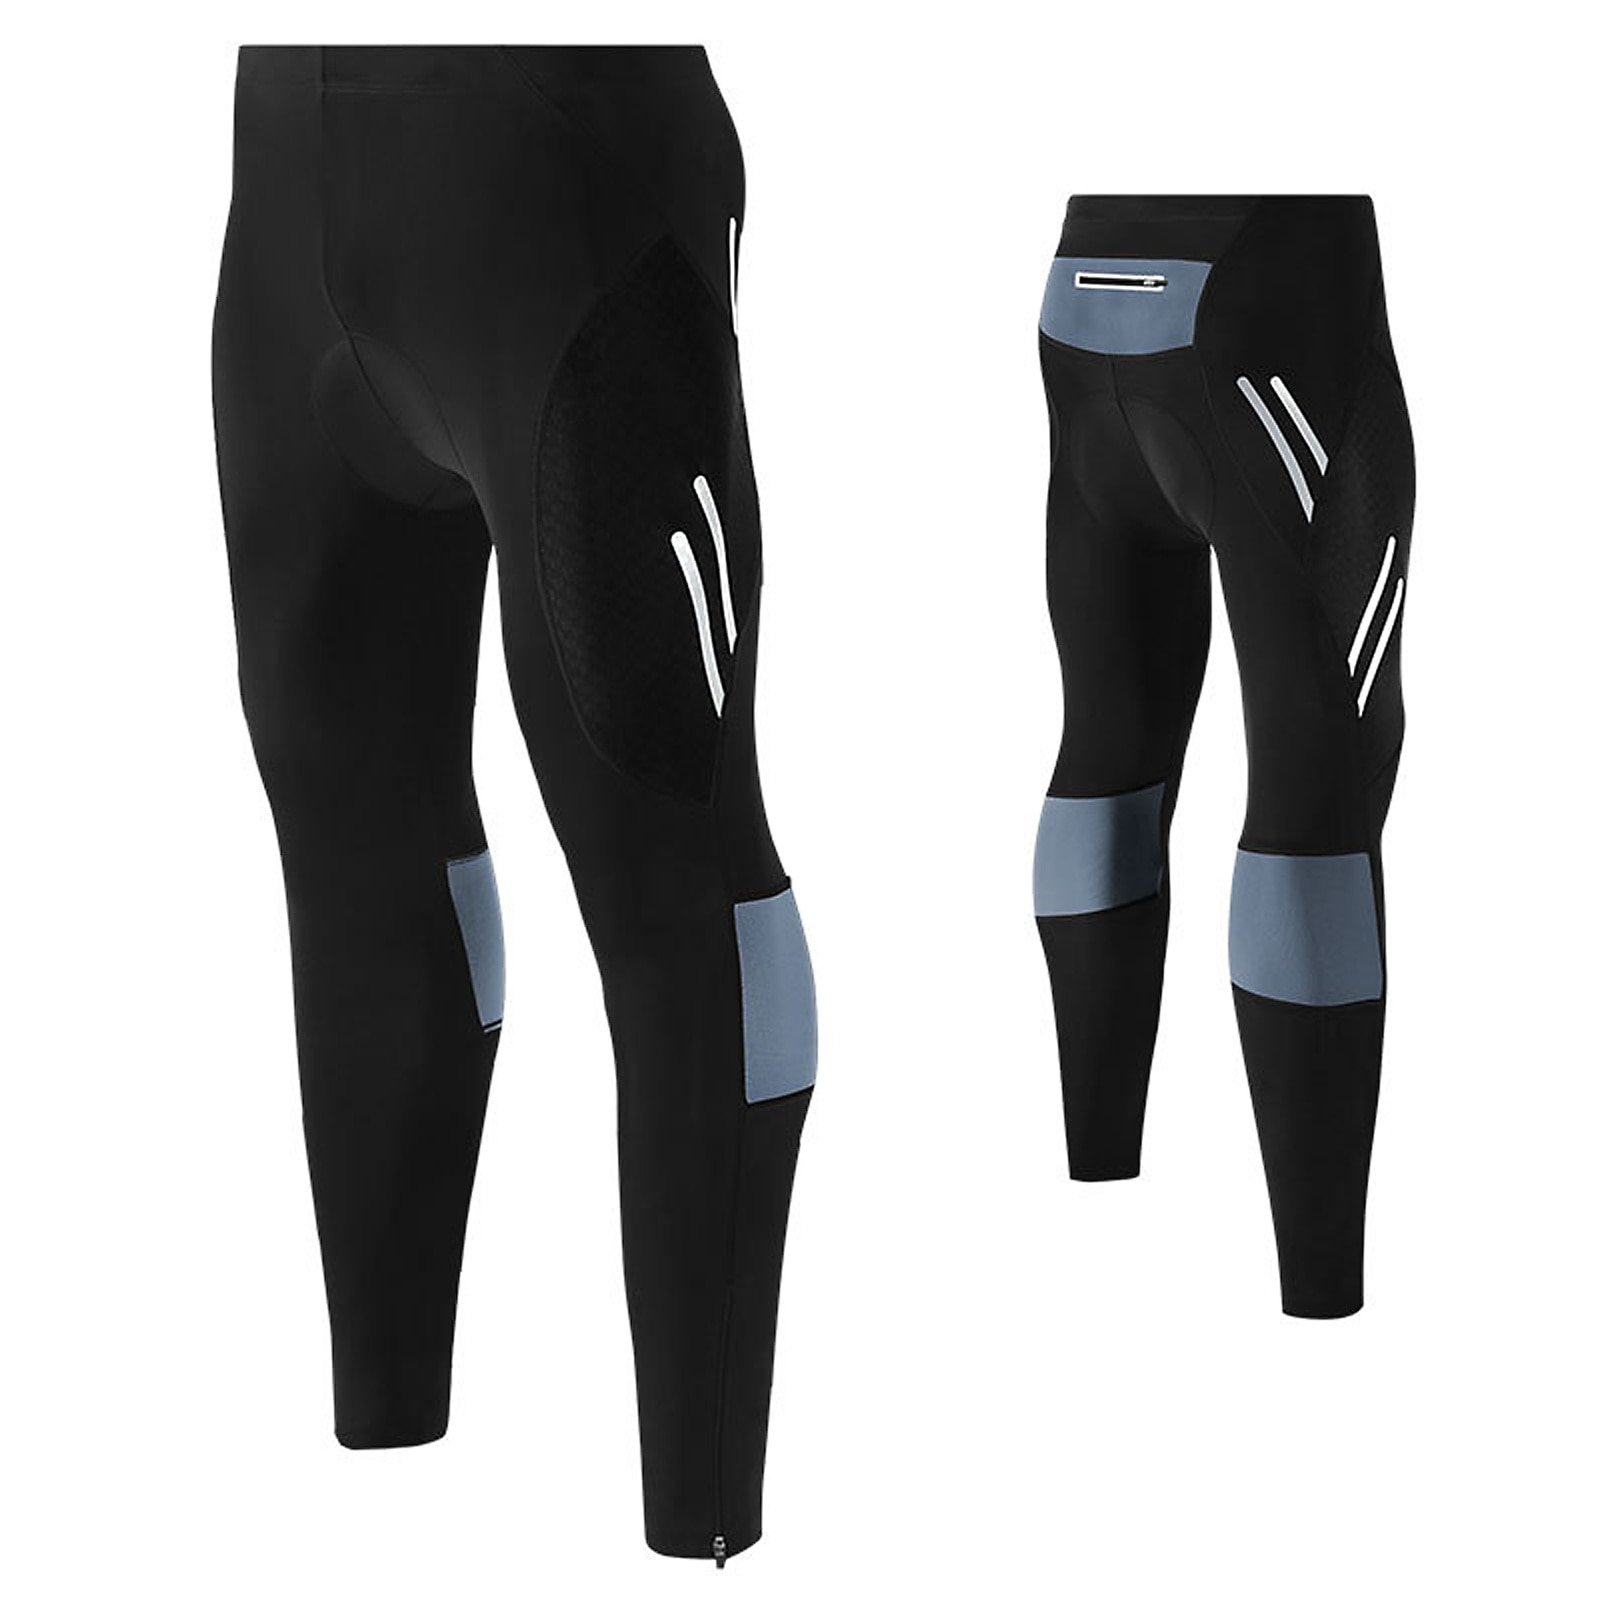 Men's Cycling Bike Pants 4D Padded Long Bicycle Compression Tights Breathable Trousers siilenyond 100% lycra cycling tights mountain bicycle pants coolmax 3d gel padded cycling tight mtb bicycle pants bike trousers